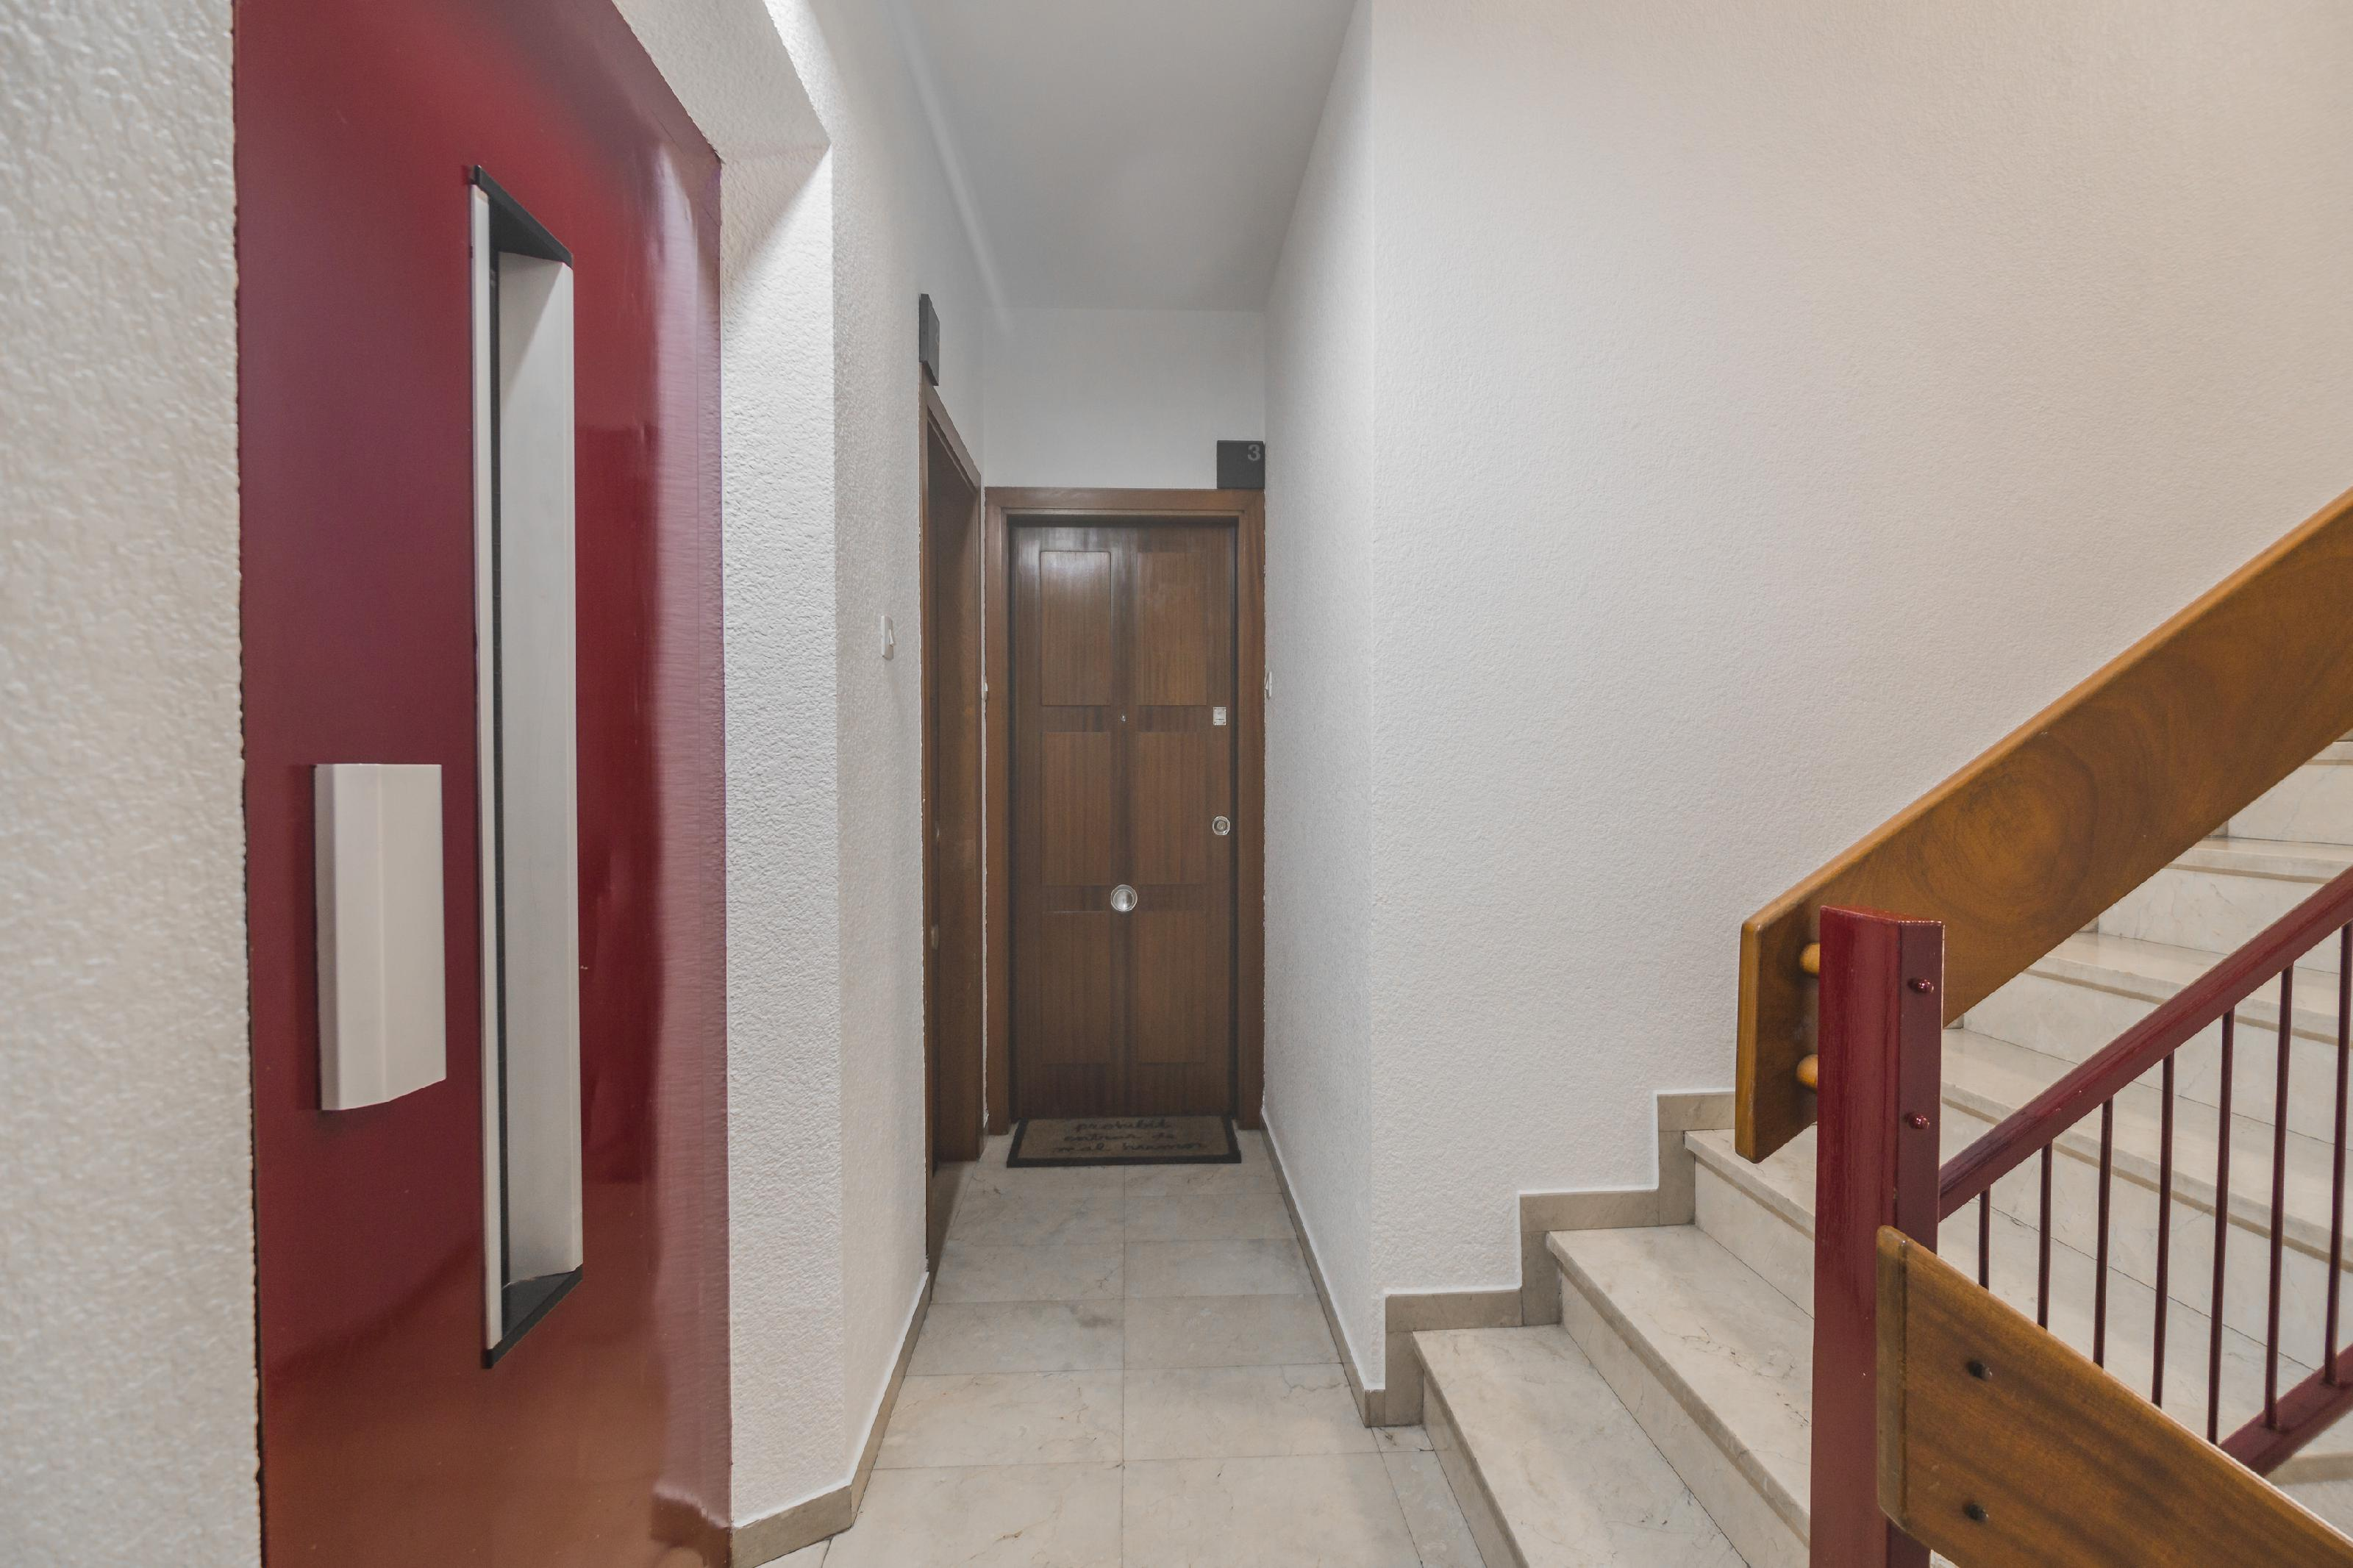 239426 Flat for sale in Les Corts, Les Corts 22